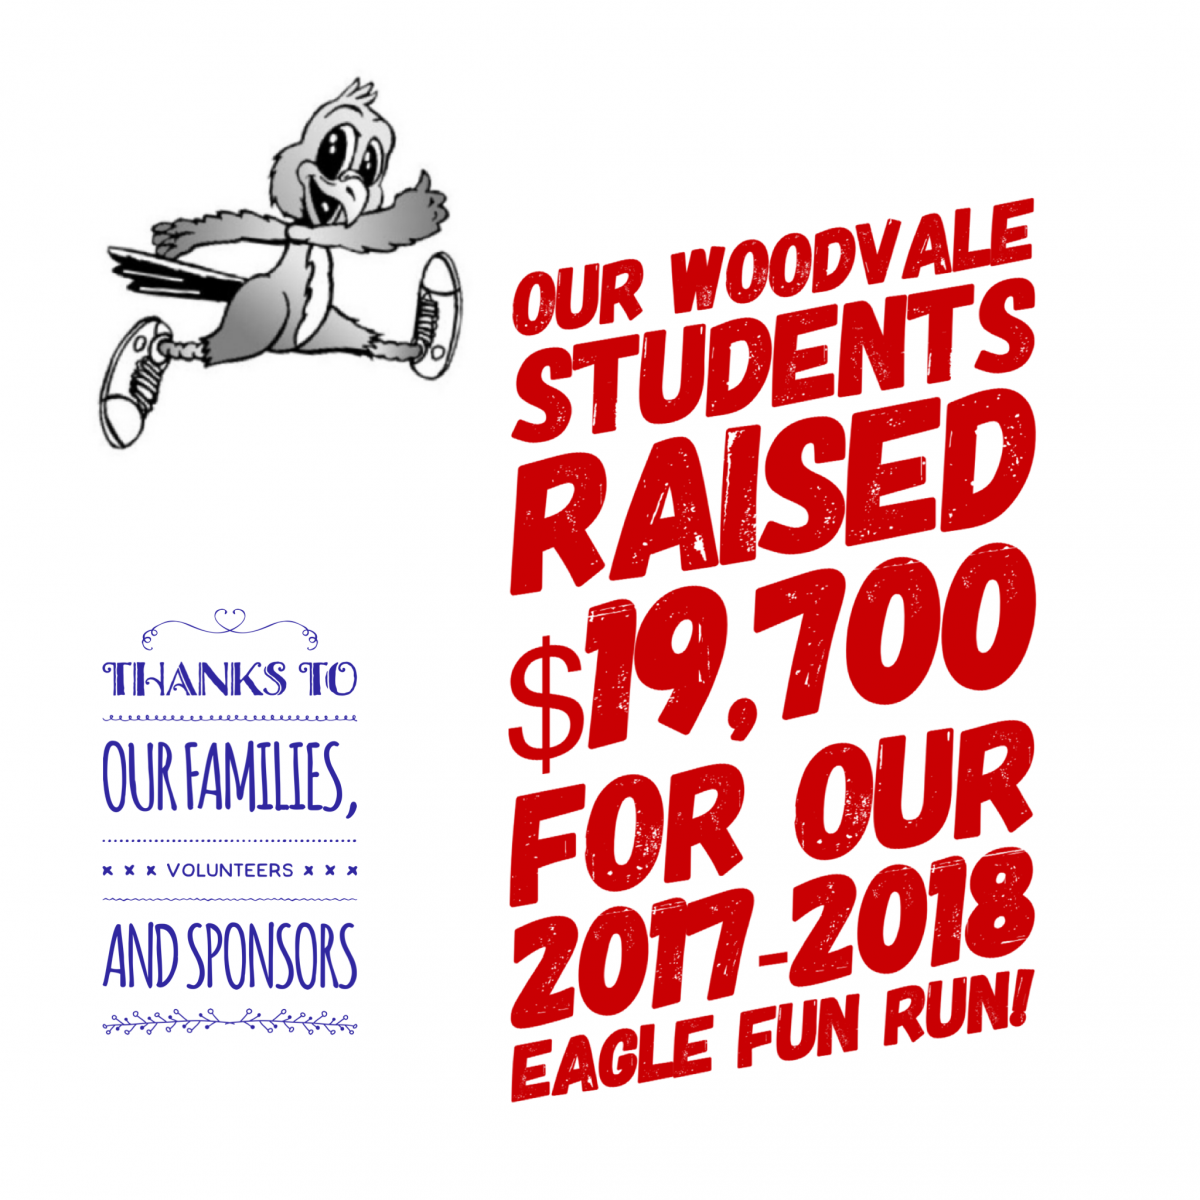 Woodvale Elementary PTC EagleRunTotals Eagle Fun Run is a SUCCESS!